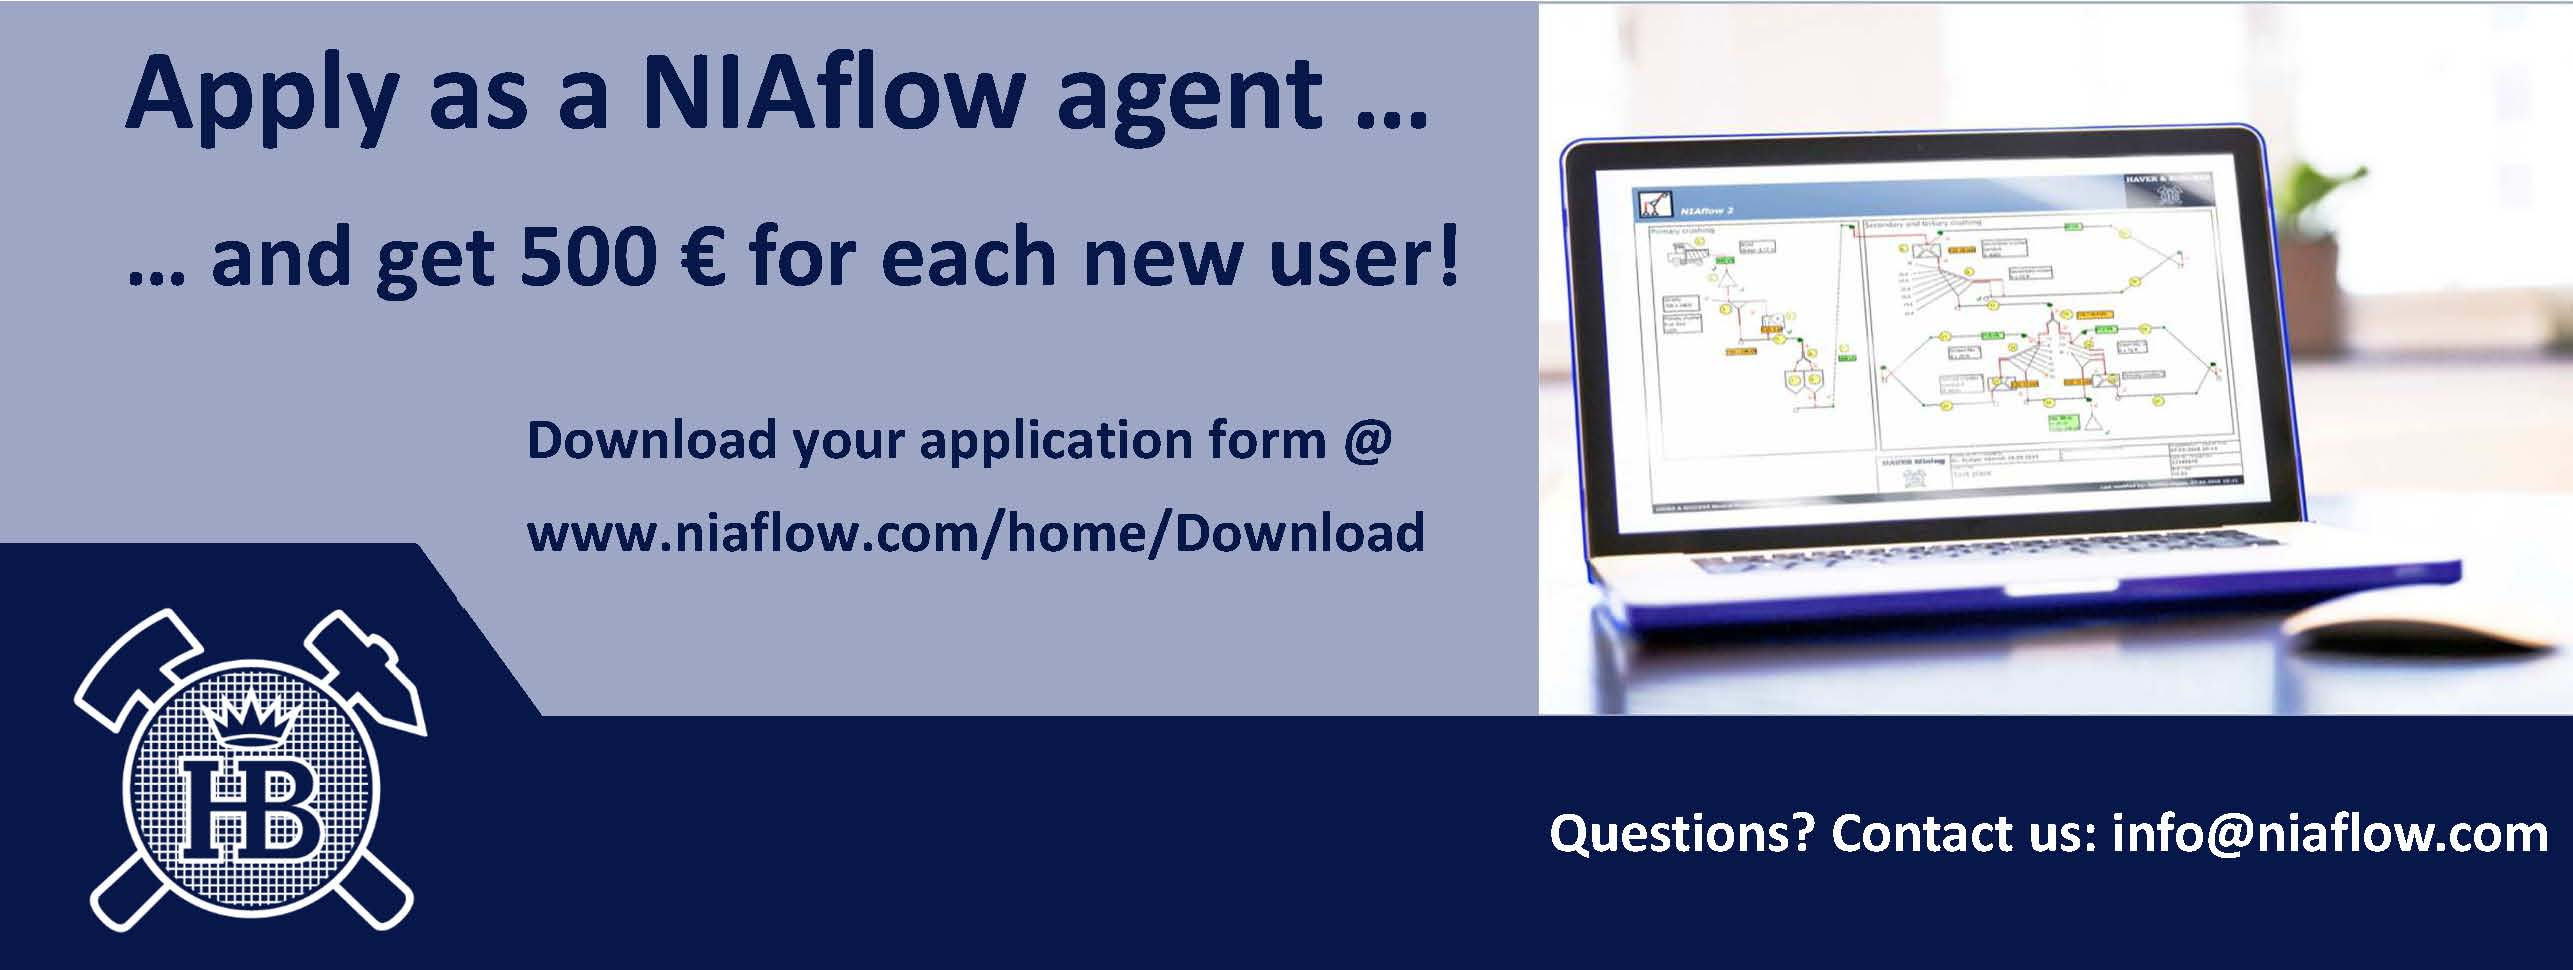 Become a NIAflow agent